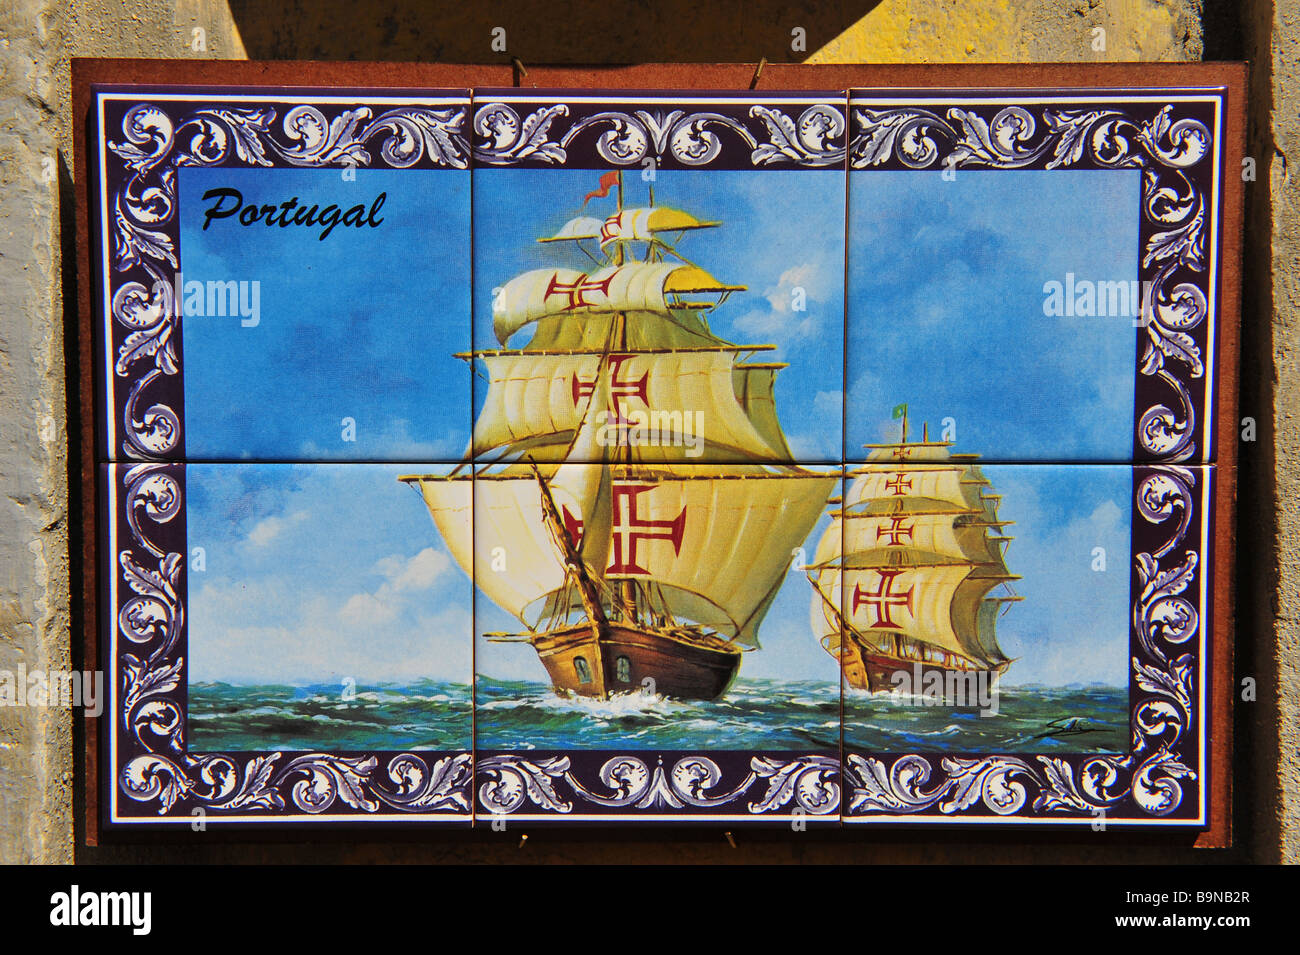 Ceramic tile picture for sale on the Algarve in Portugal Stock Photo ...